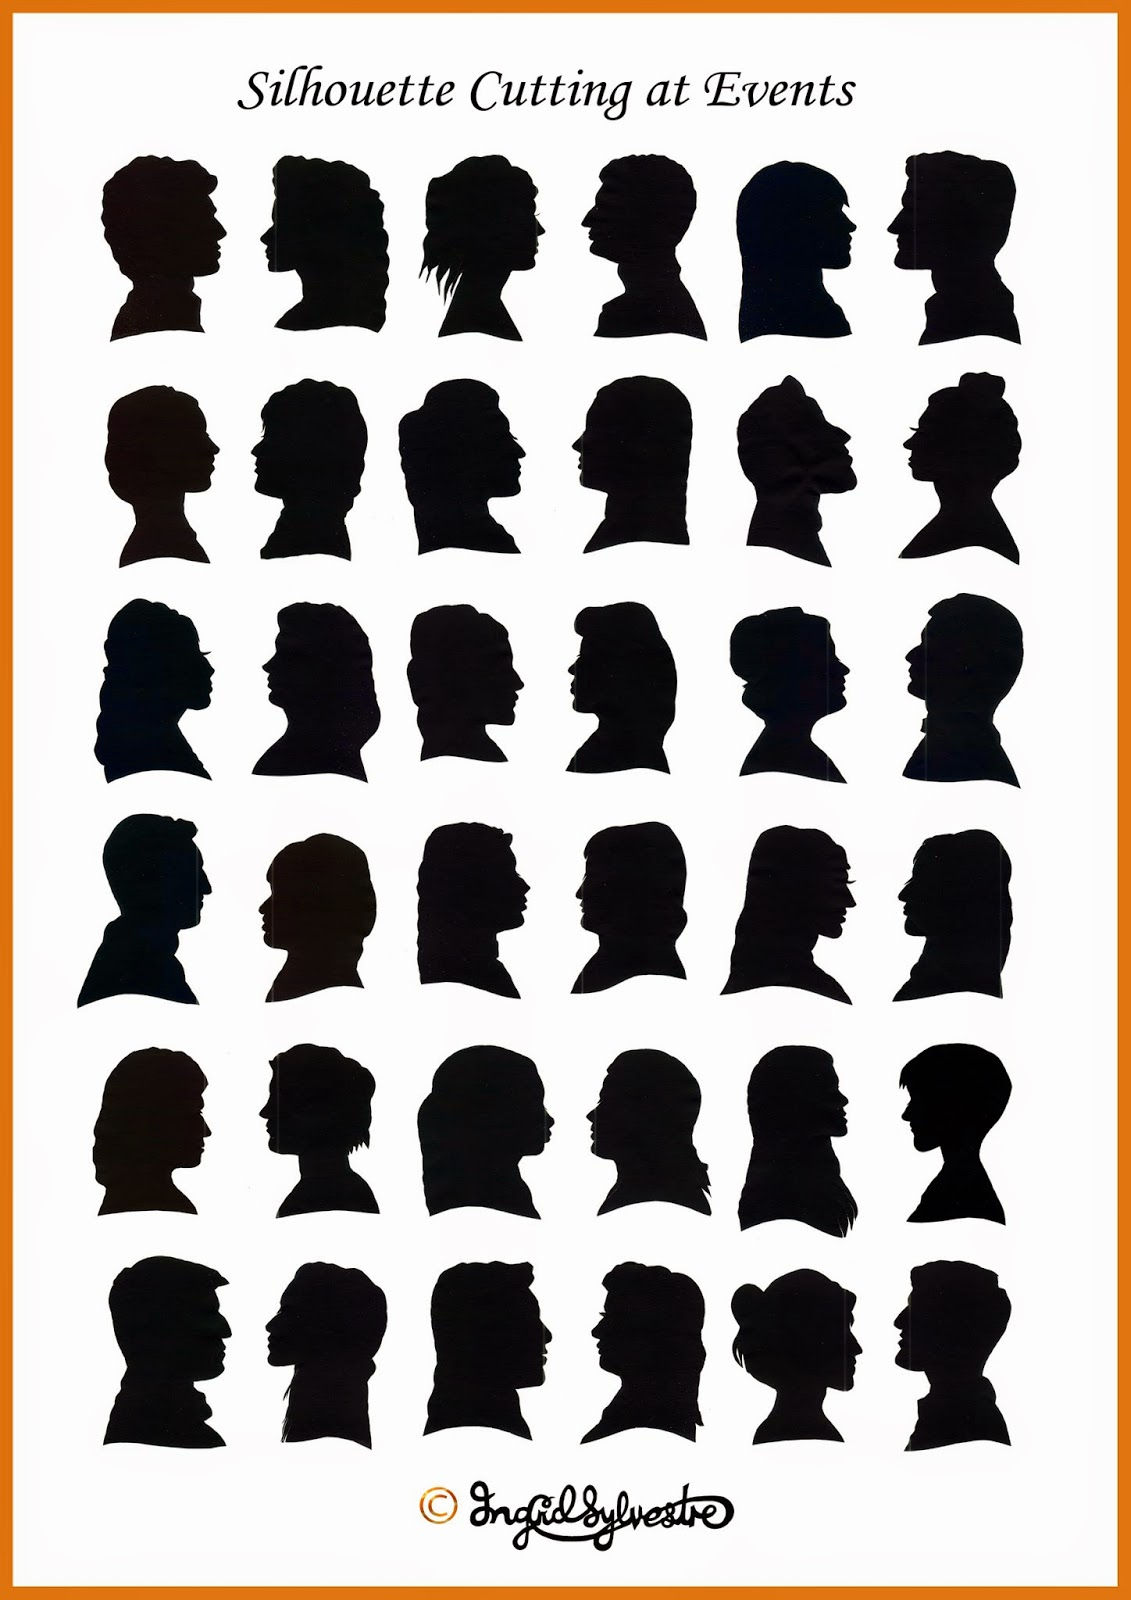 Silhouettes cut by UK silhouette artist - shadow cutter  Ingrid Sylvestre, weddings proms, parties, corporate events, launches